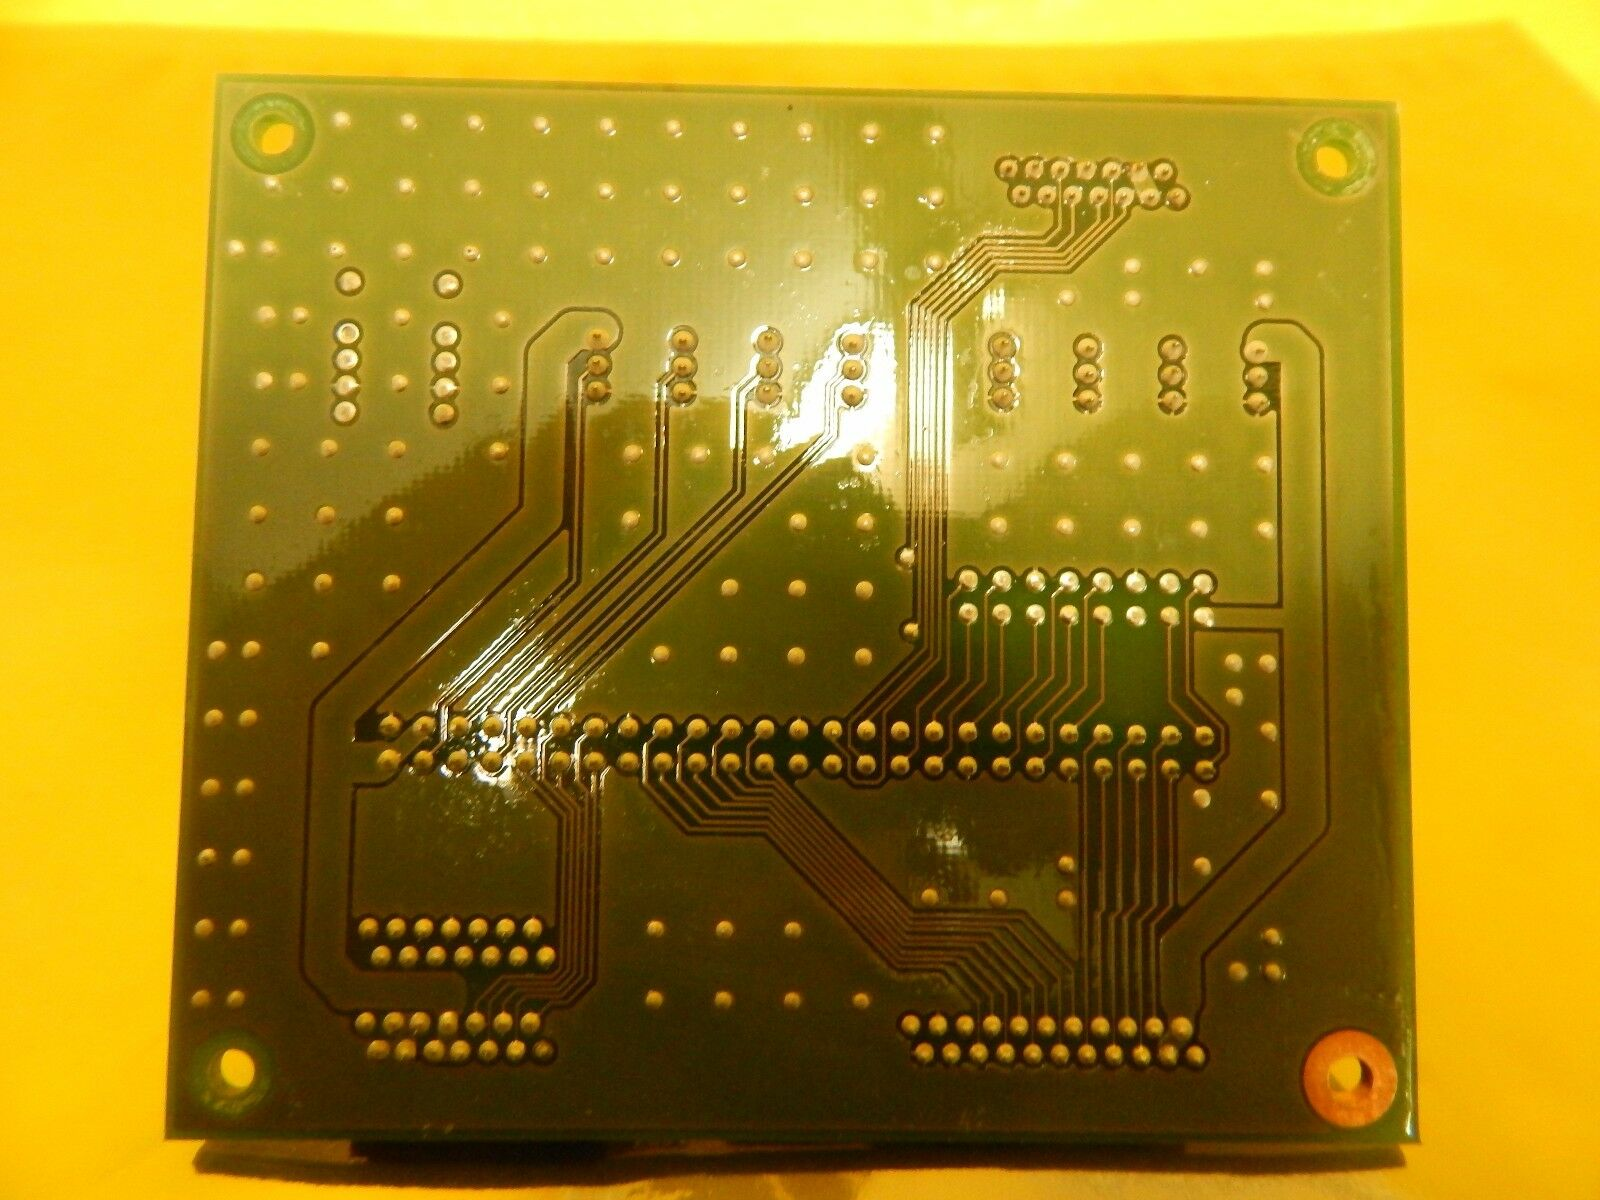 TDK TAS-IN6 Backplane Interface Board PCB Rev. 1.10 TAS300 Load Port Used